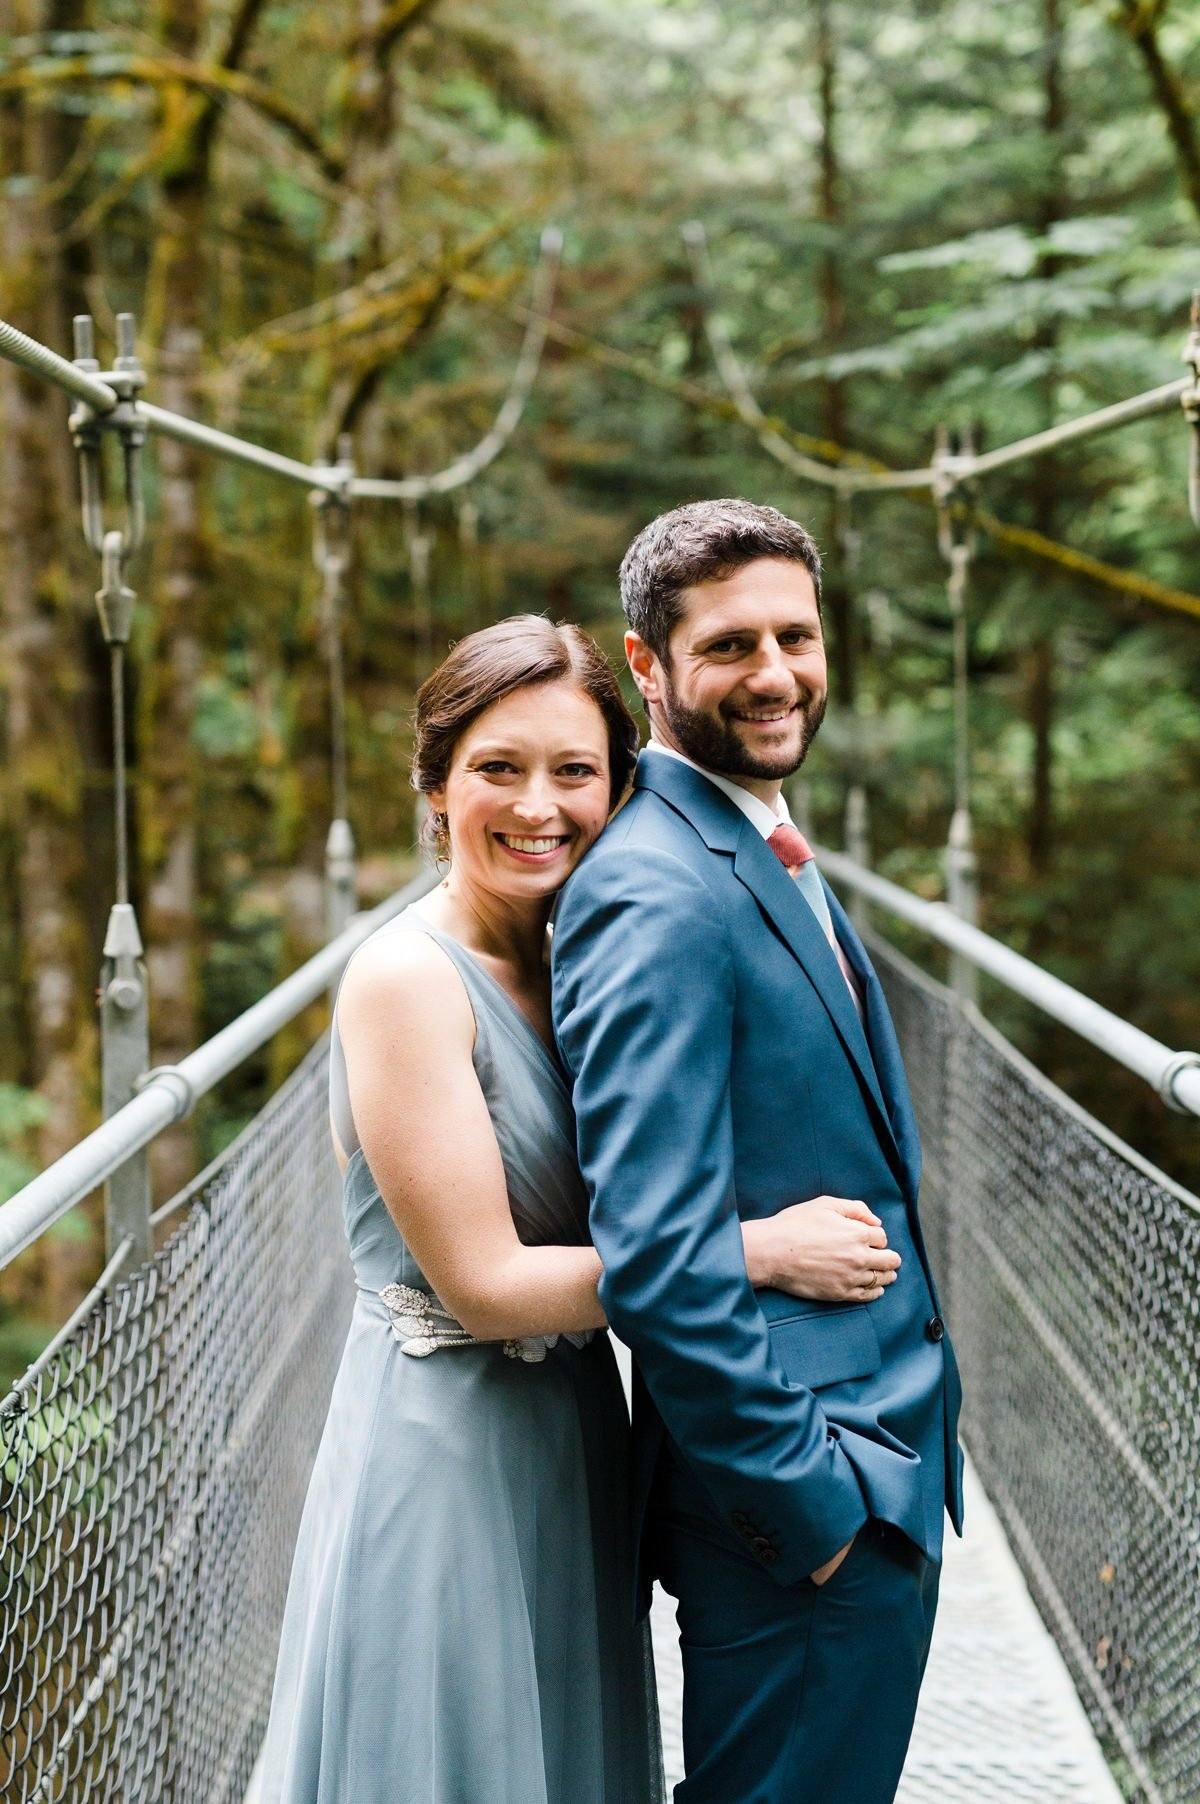 bainbridge-island-washington-wedding-photographer-cameron-zegers-200_1200